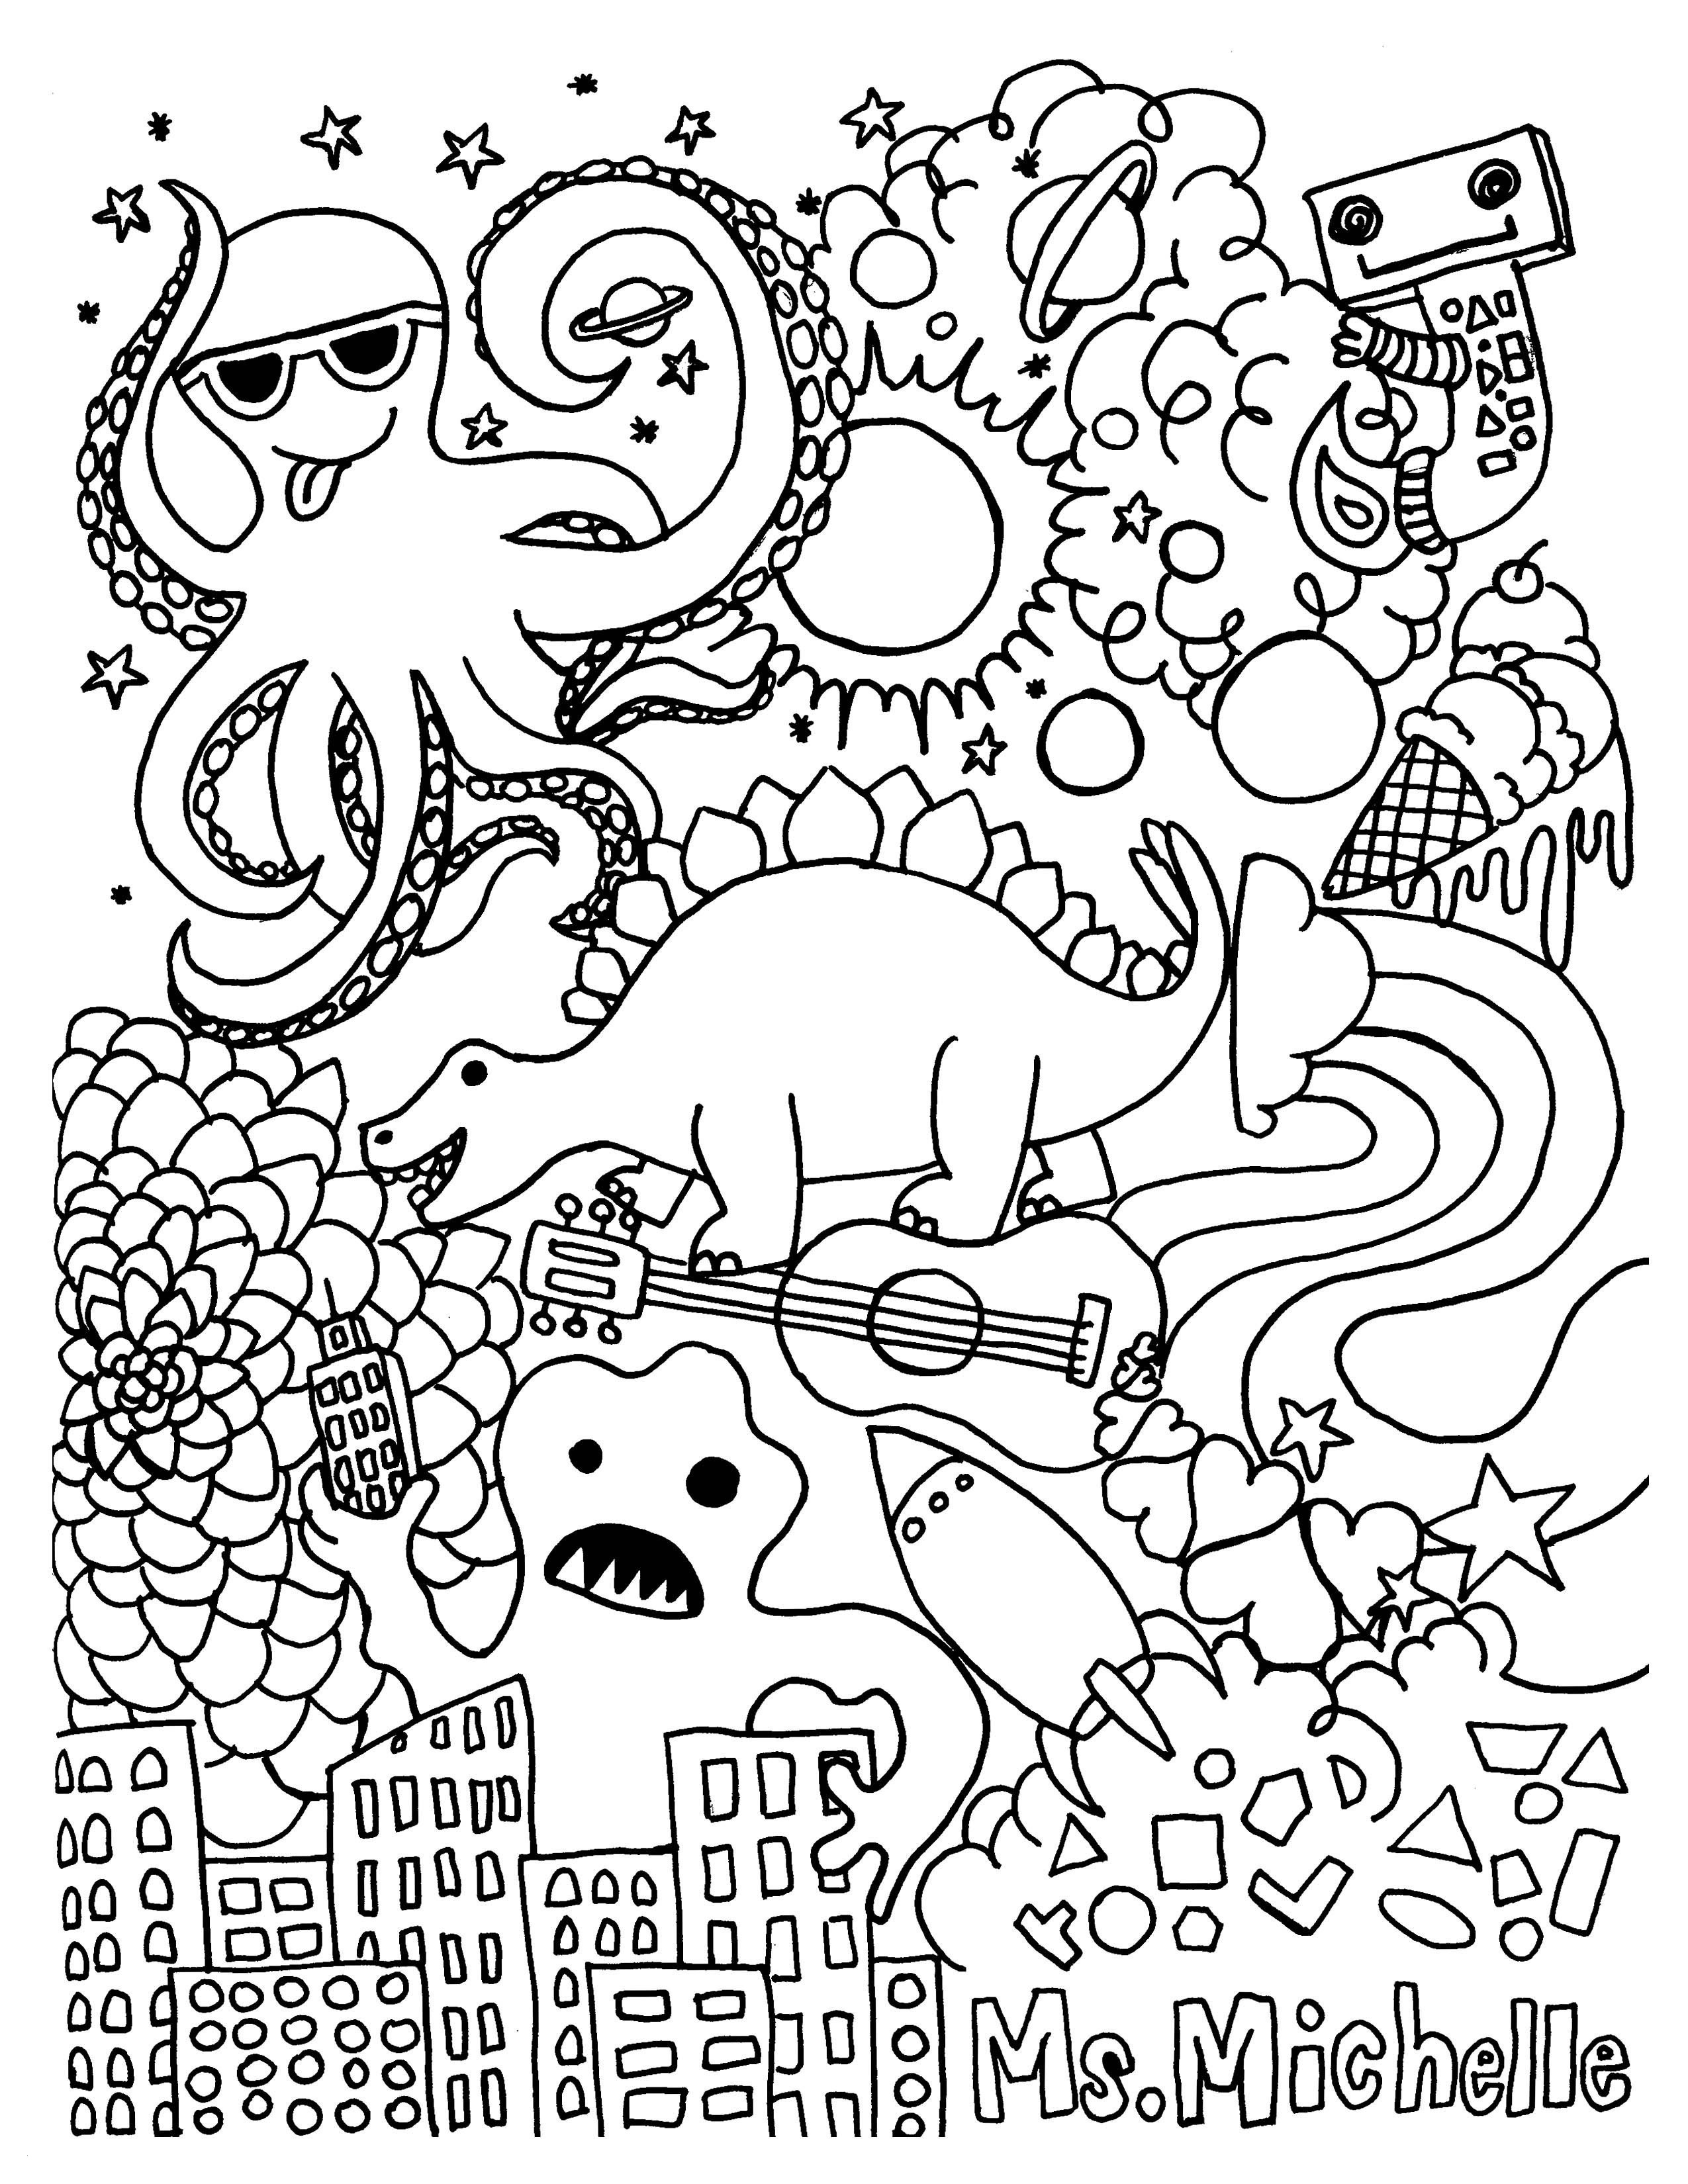 22 Baby Jesus Coloring Pages For Kids Collection Coloring Sheets